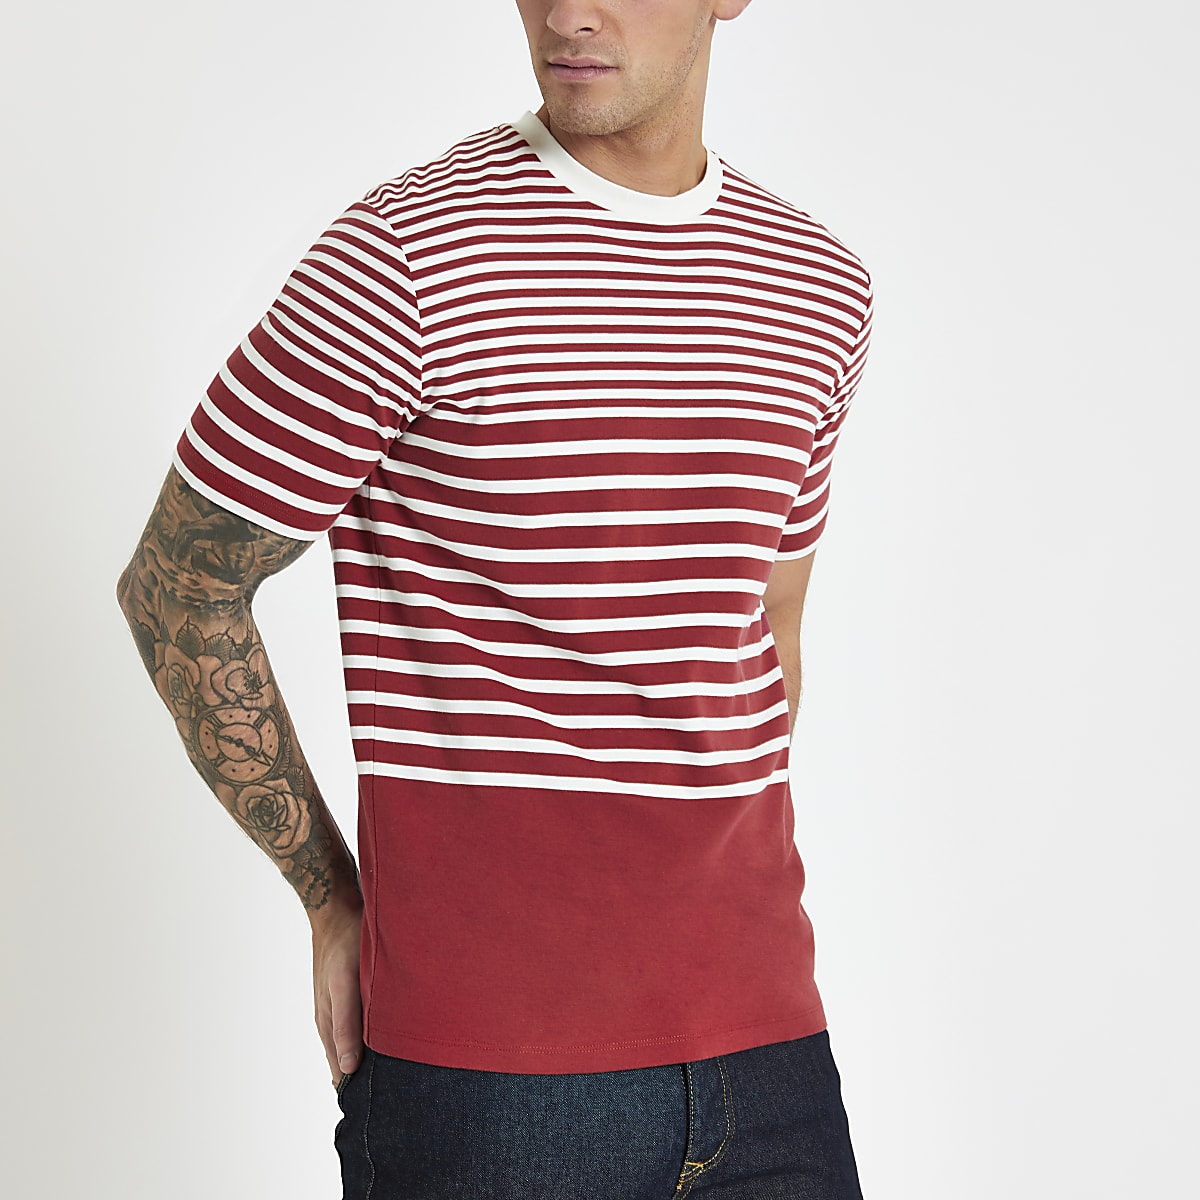 Selected Homme – T-shirt rayé rouge